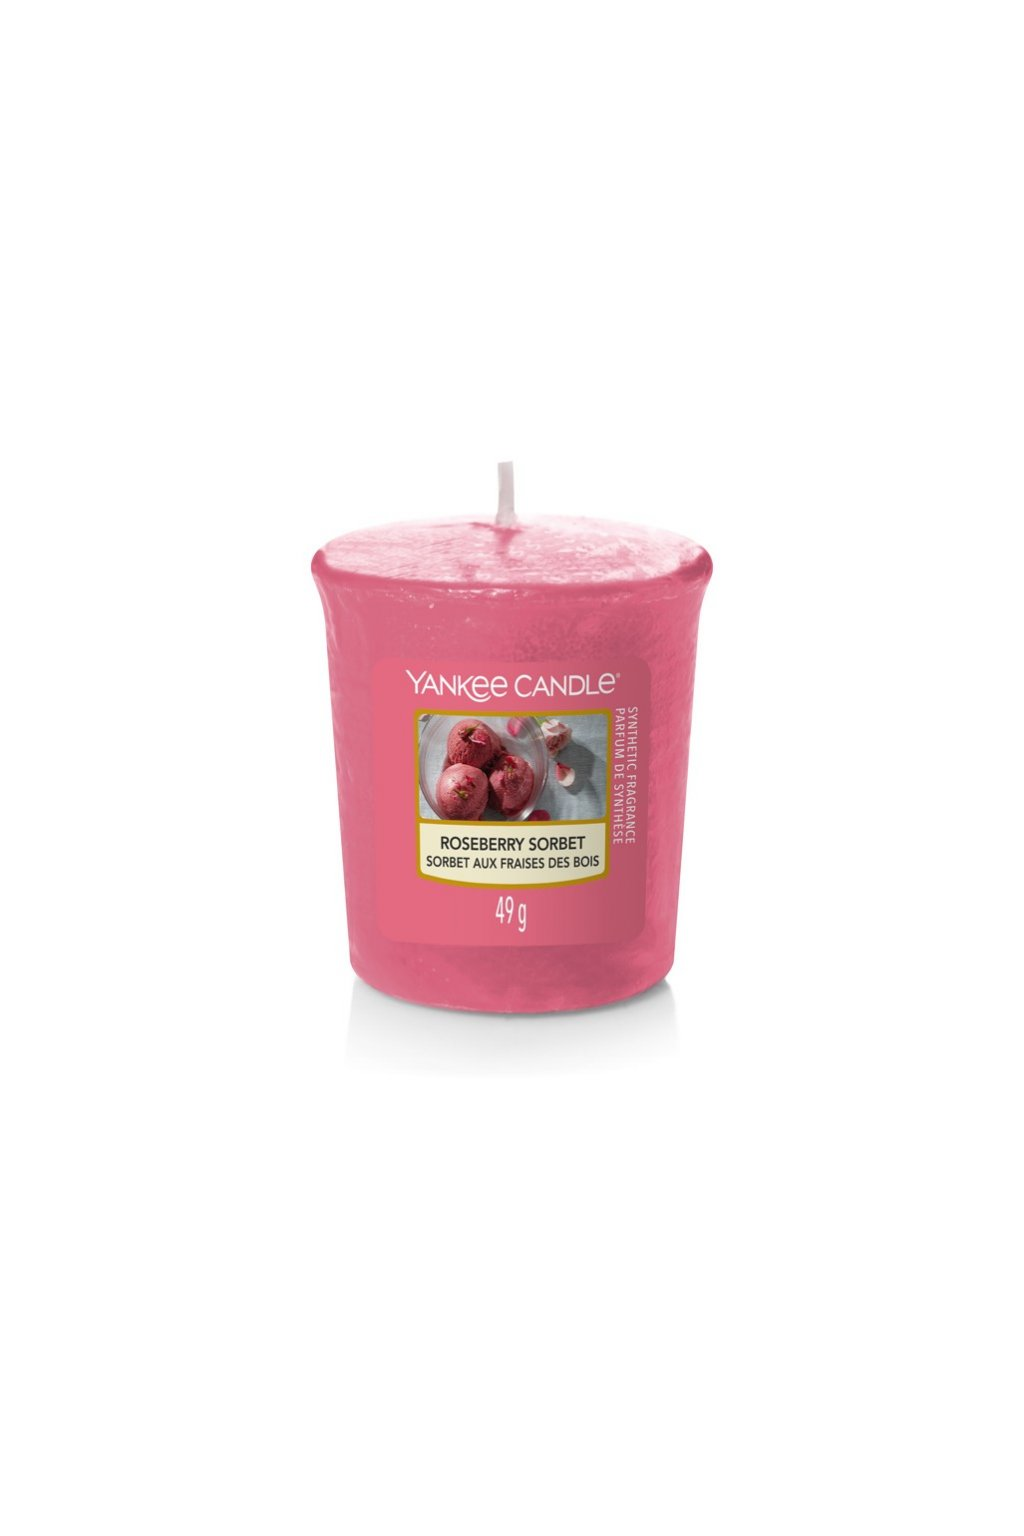 Yankee Candle Roseberry Sorbet 49g